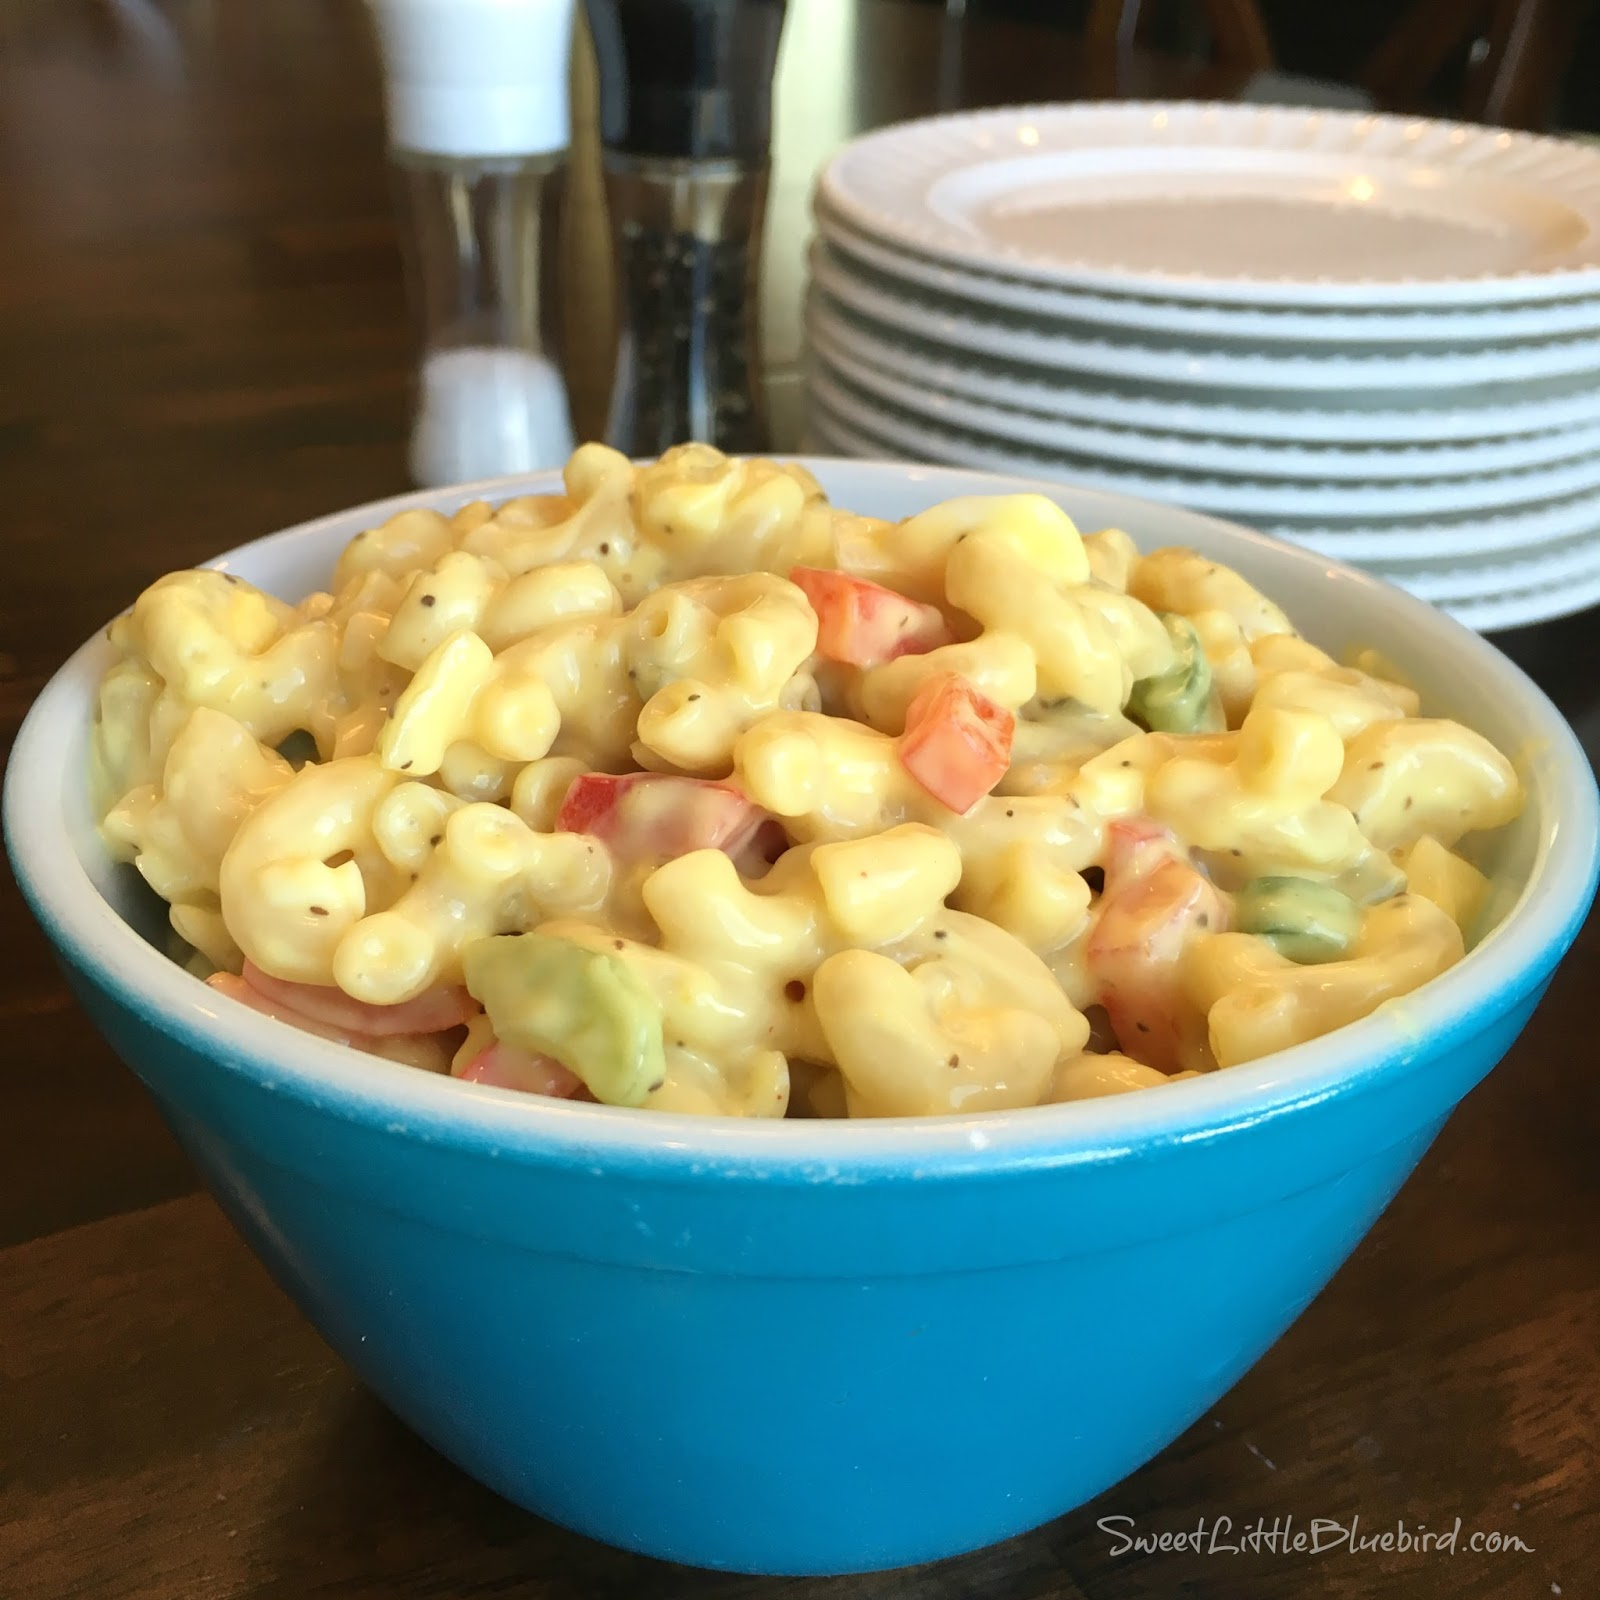 Best ever amish macaroni salad sweet little bluebird for Best summer pasta salad recipes ever